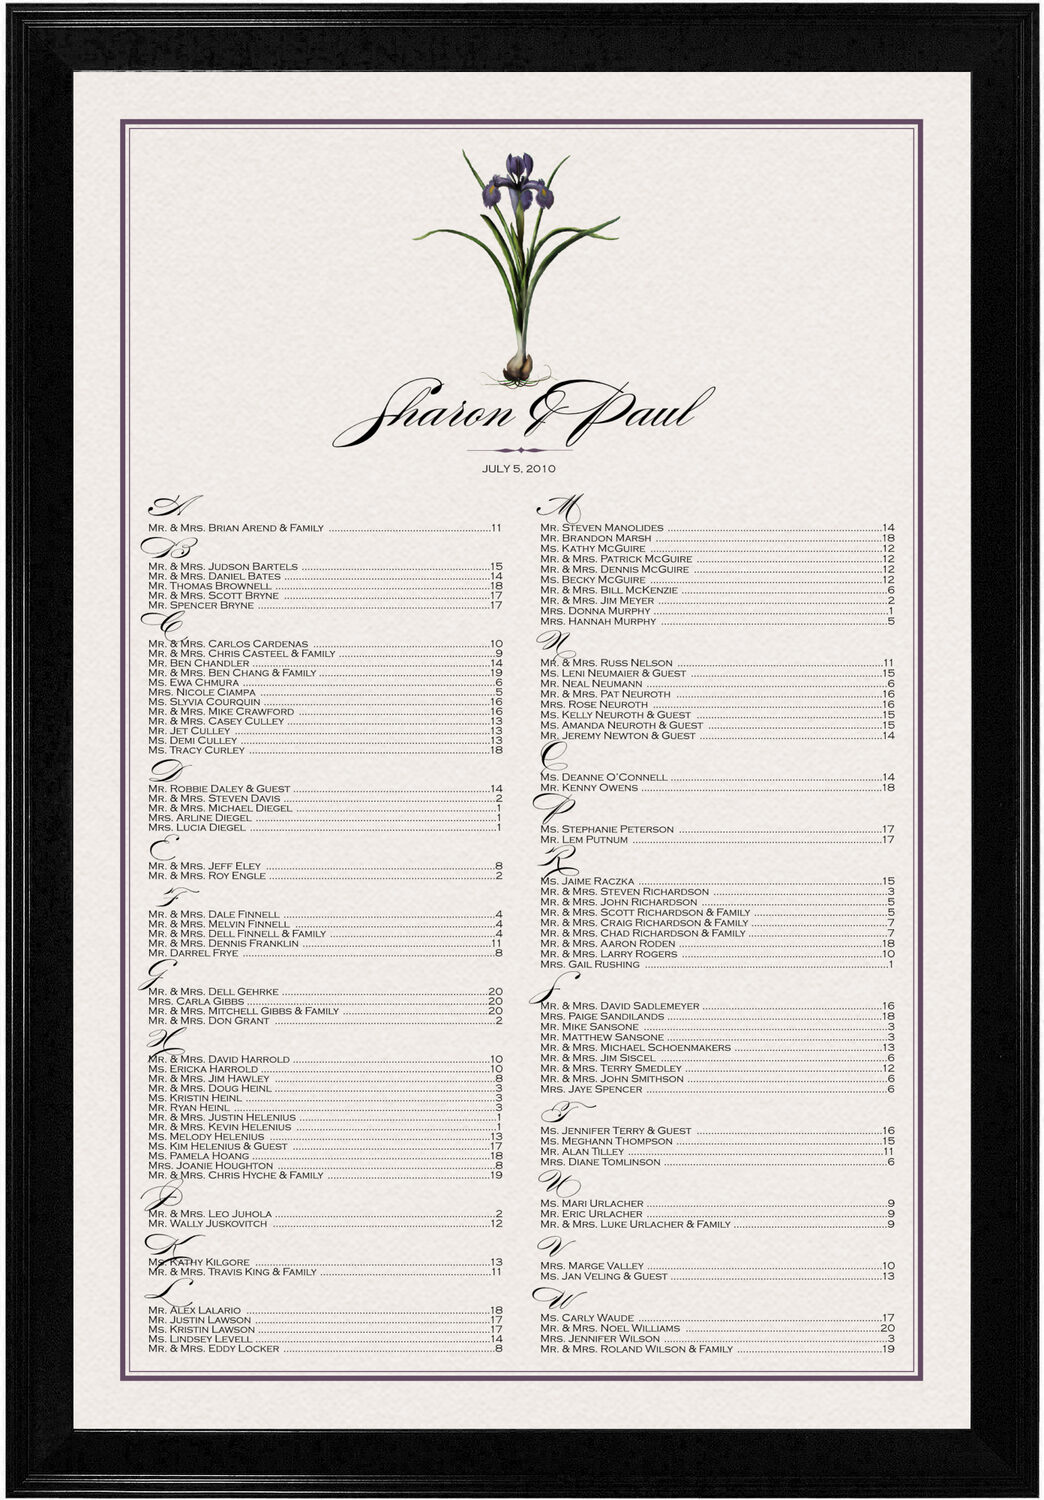 Photograph of Iris Bulb Seating Charts